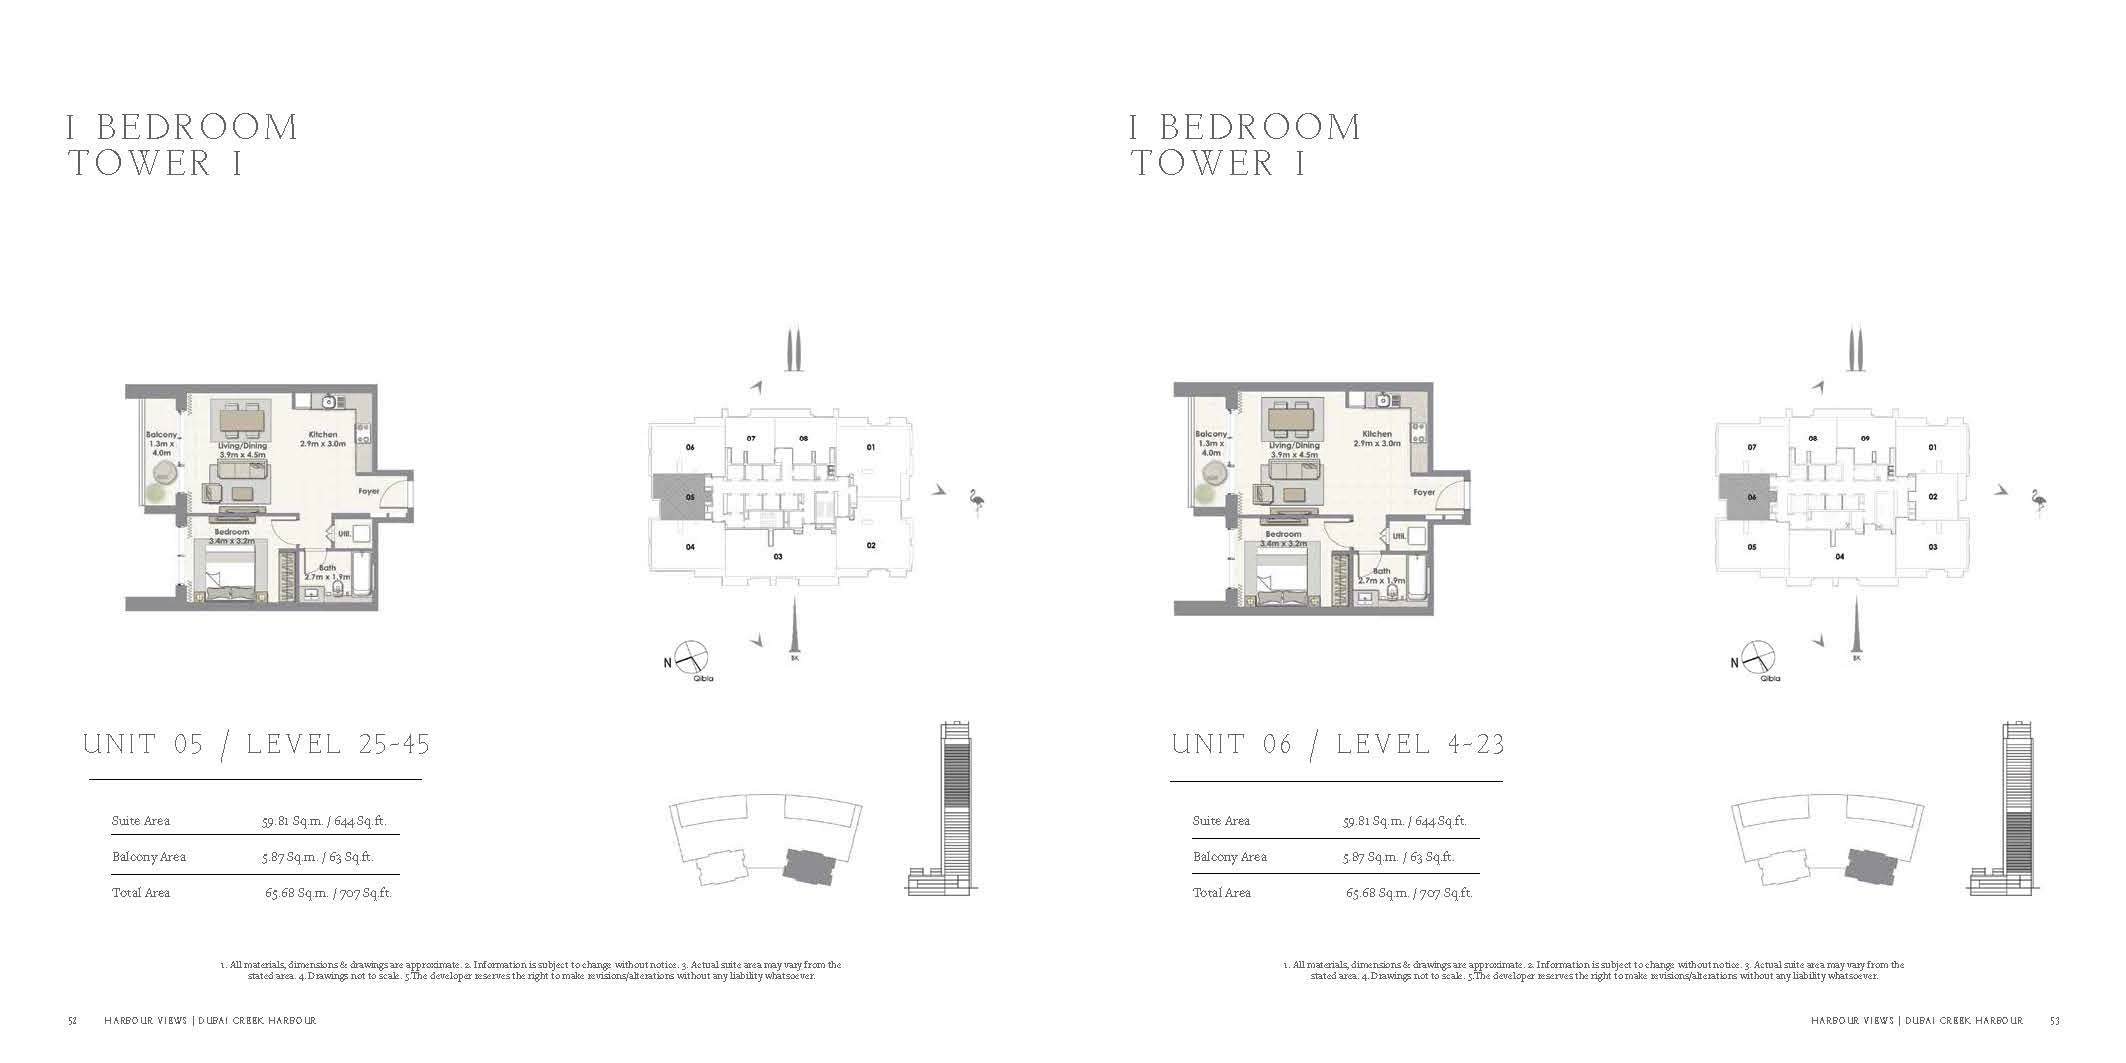 HarbourViewsfloorplans Page 04